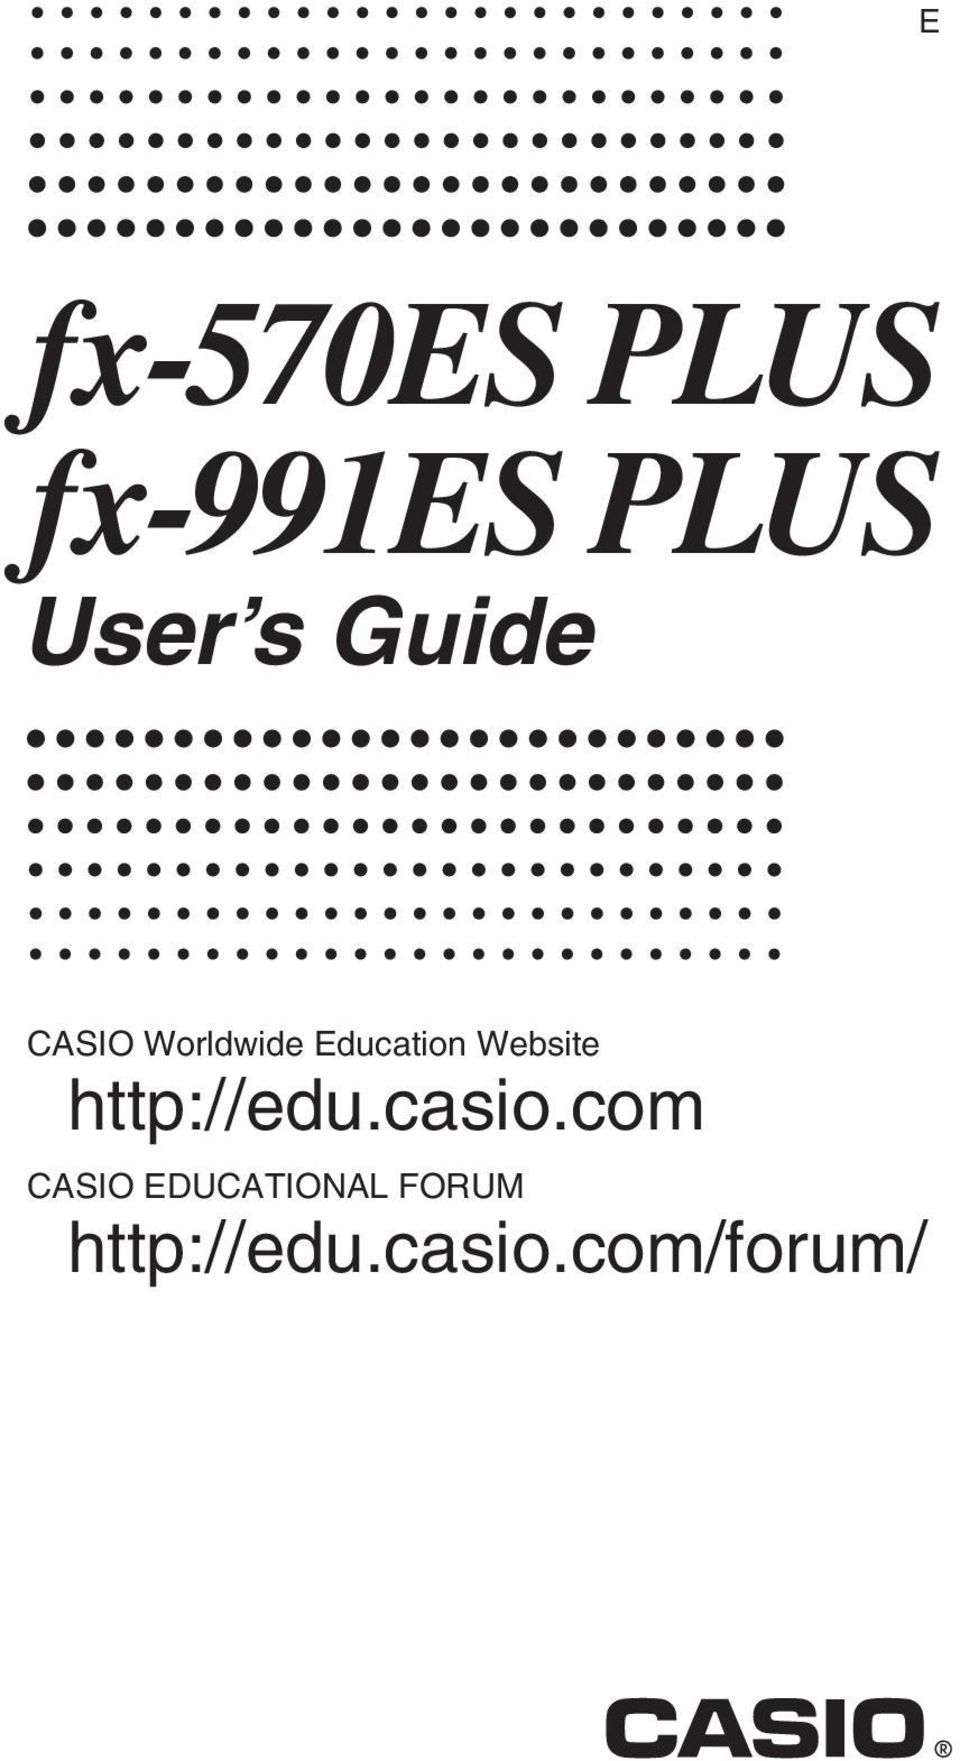 Website http://edu.casio.